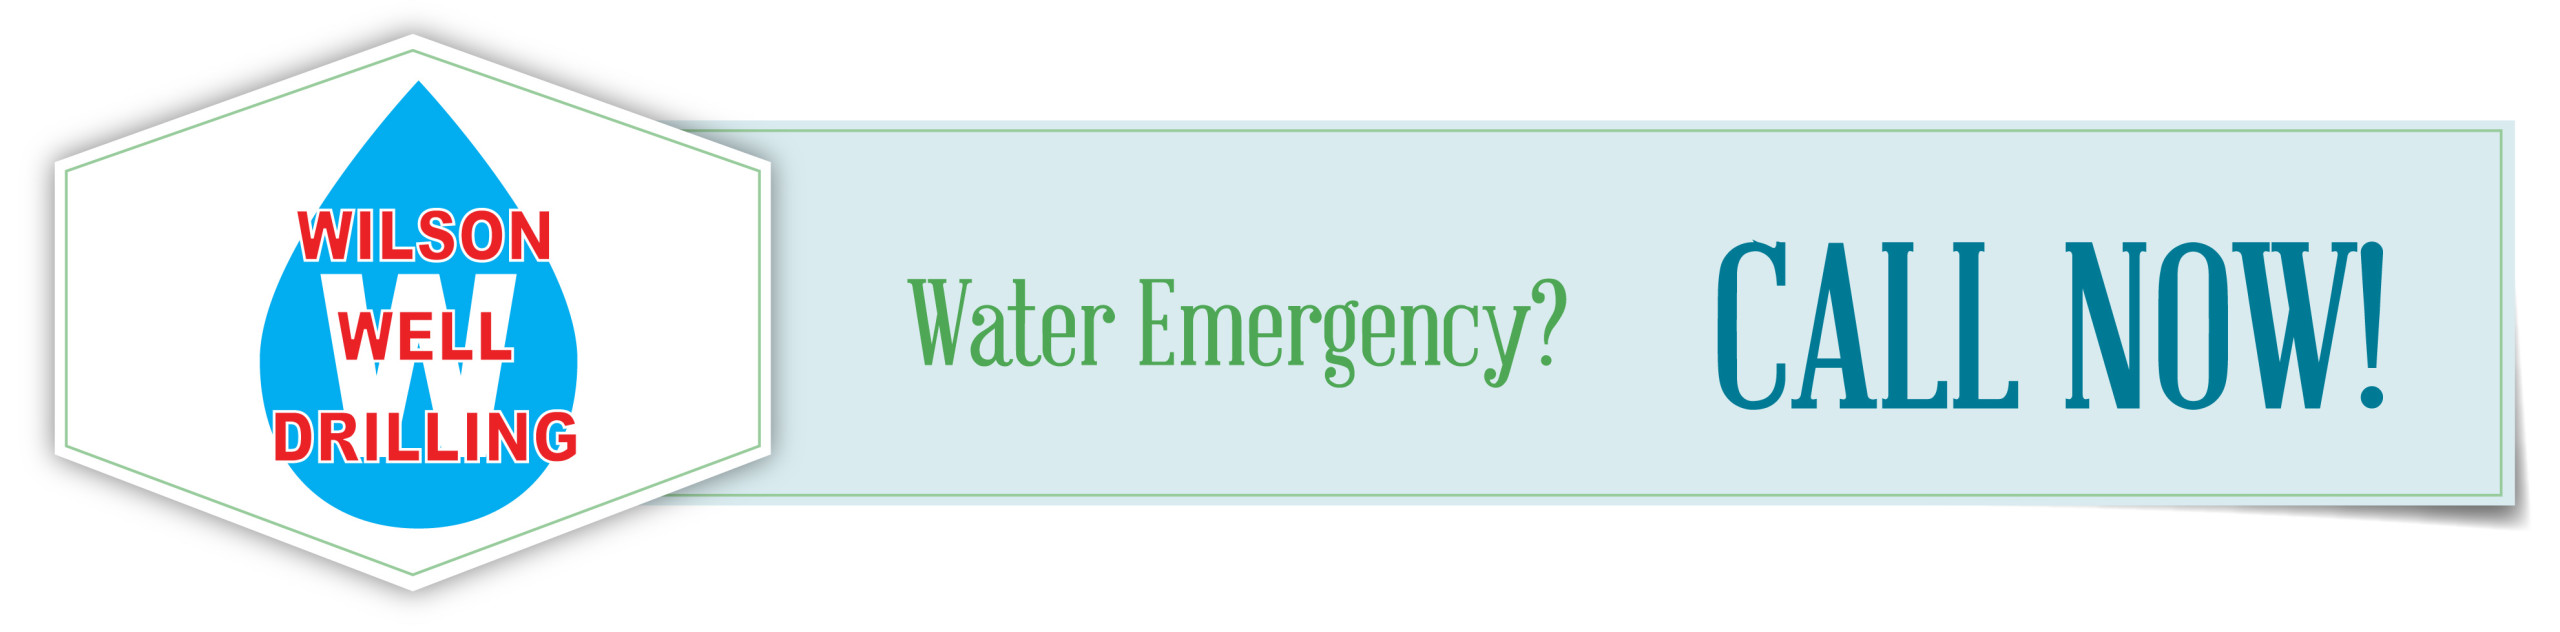 Water Emergency - Call Now